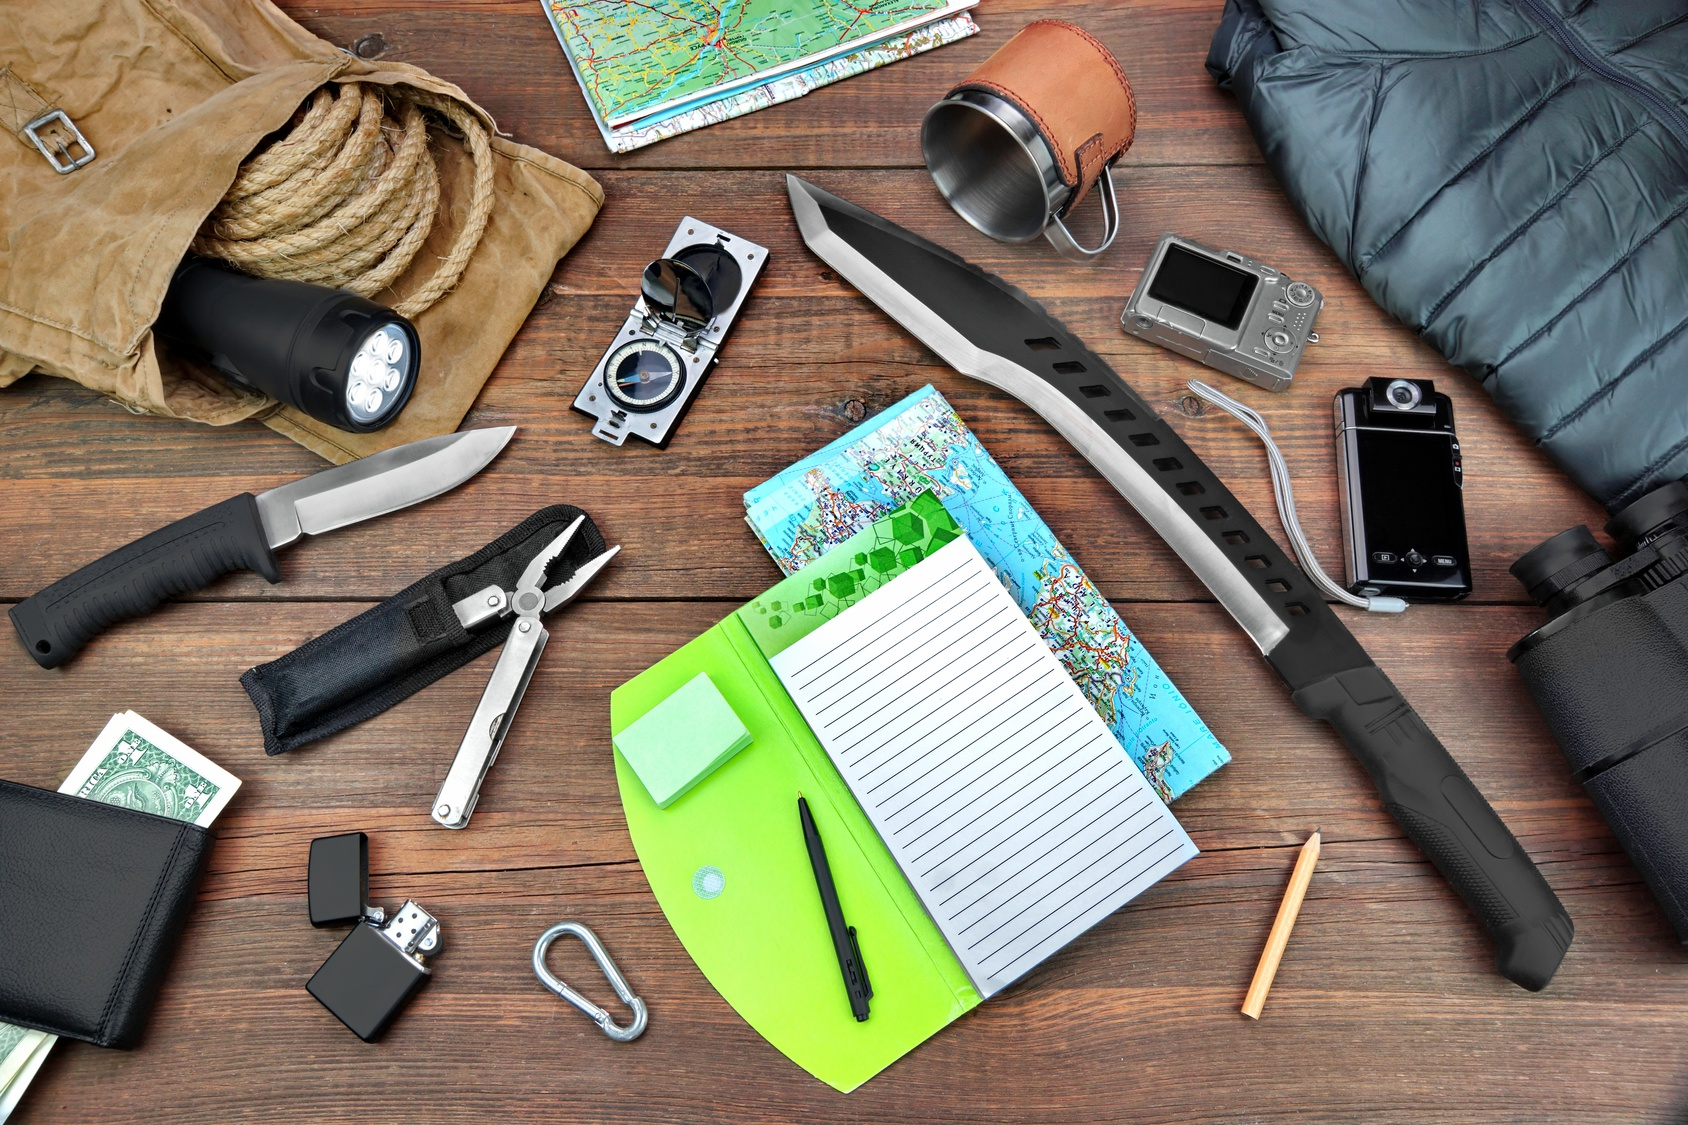 Top 5 Camping Emergency Items